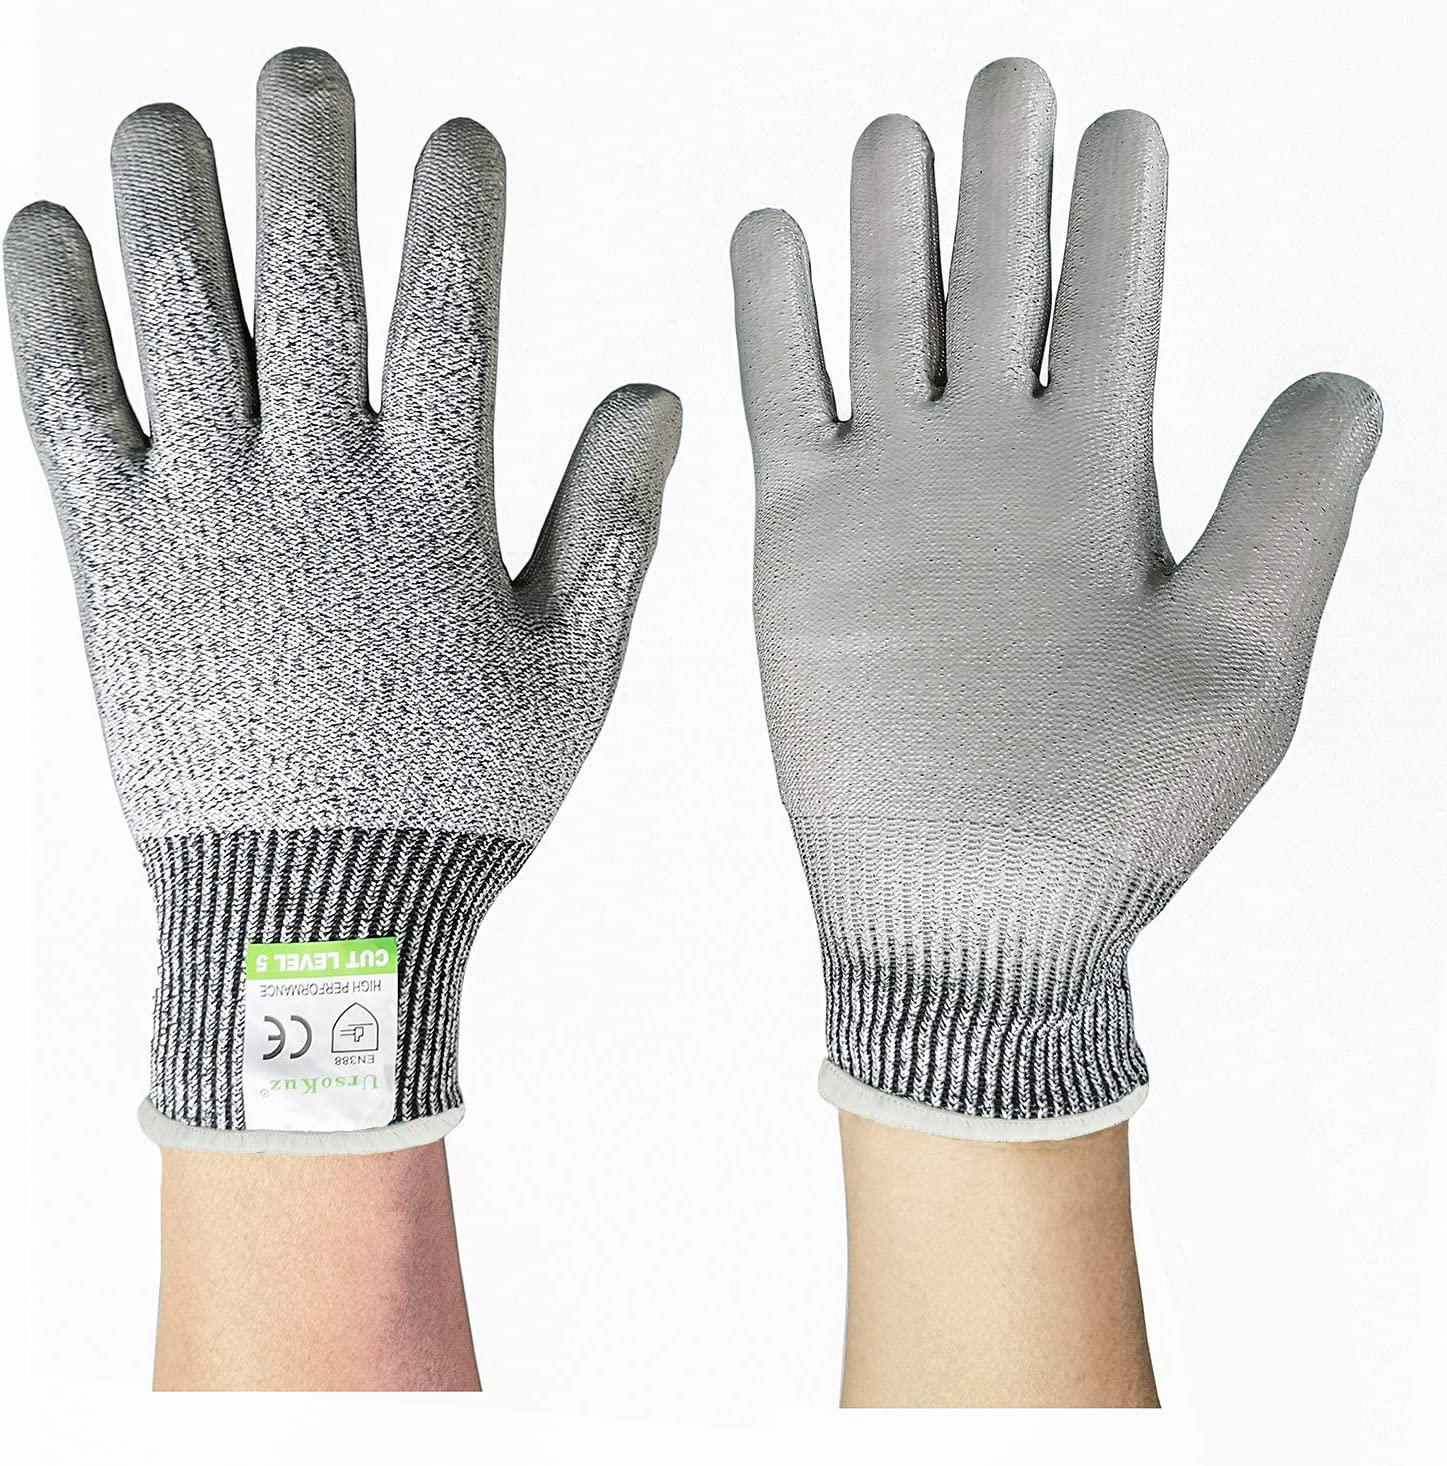 Size 8//M, Grey, SK2131 Vgo 5 Pairs Cut Resistant Gloves High Performance Level 5 Protection EN388 Certified Hand Protection Gloves